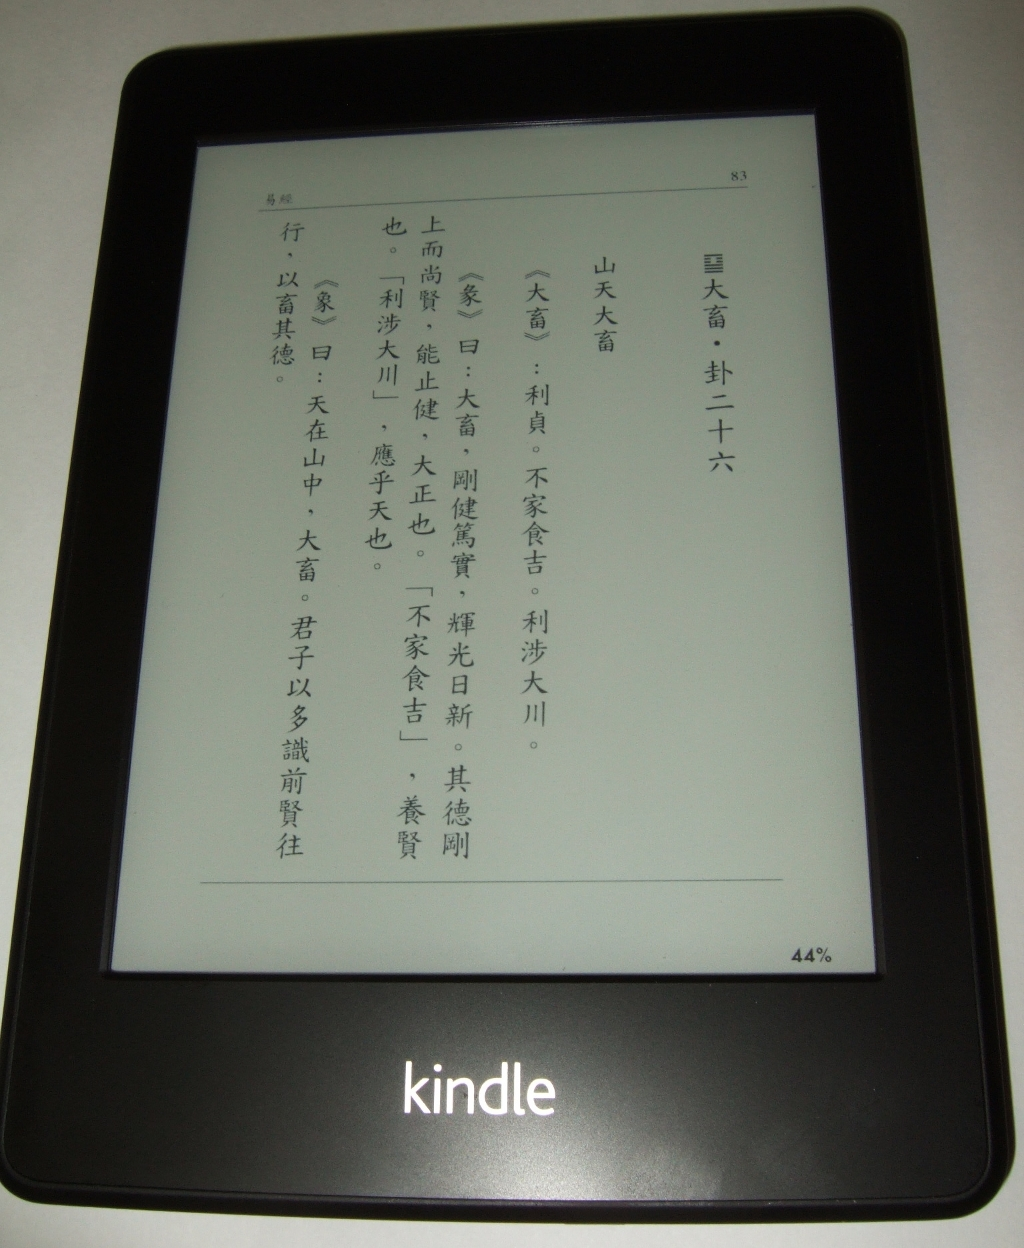 天火藏書-Kindle Paperwhite 3G 開箱簡介